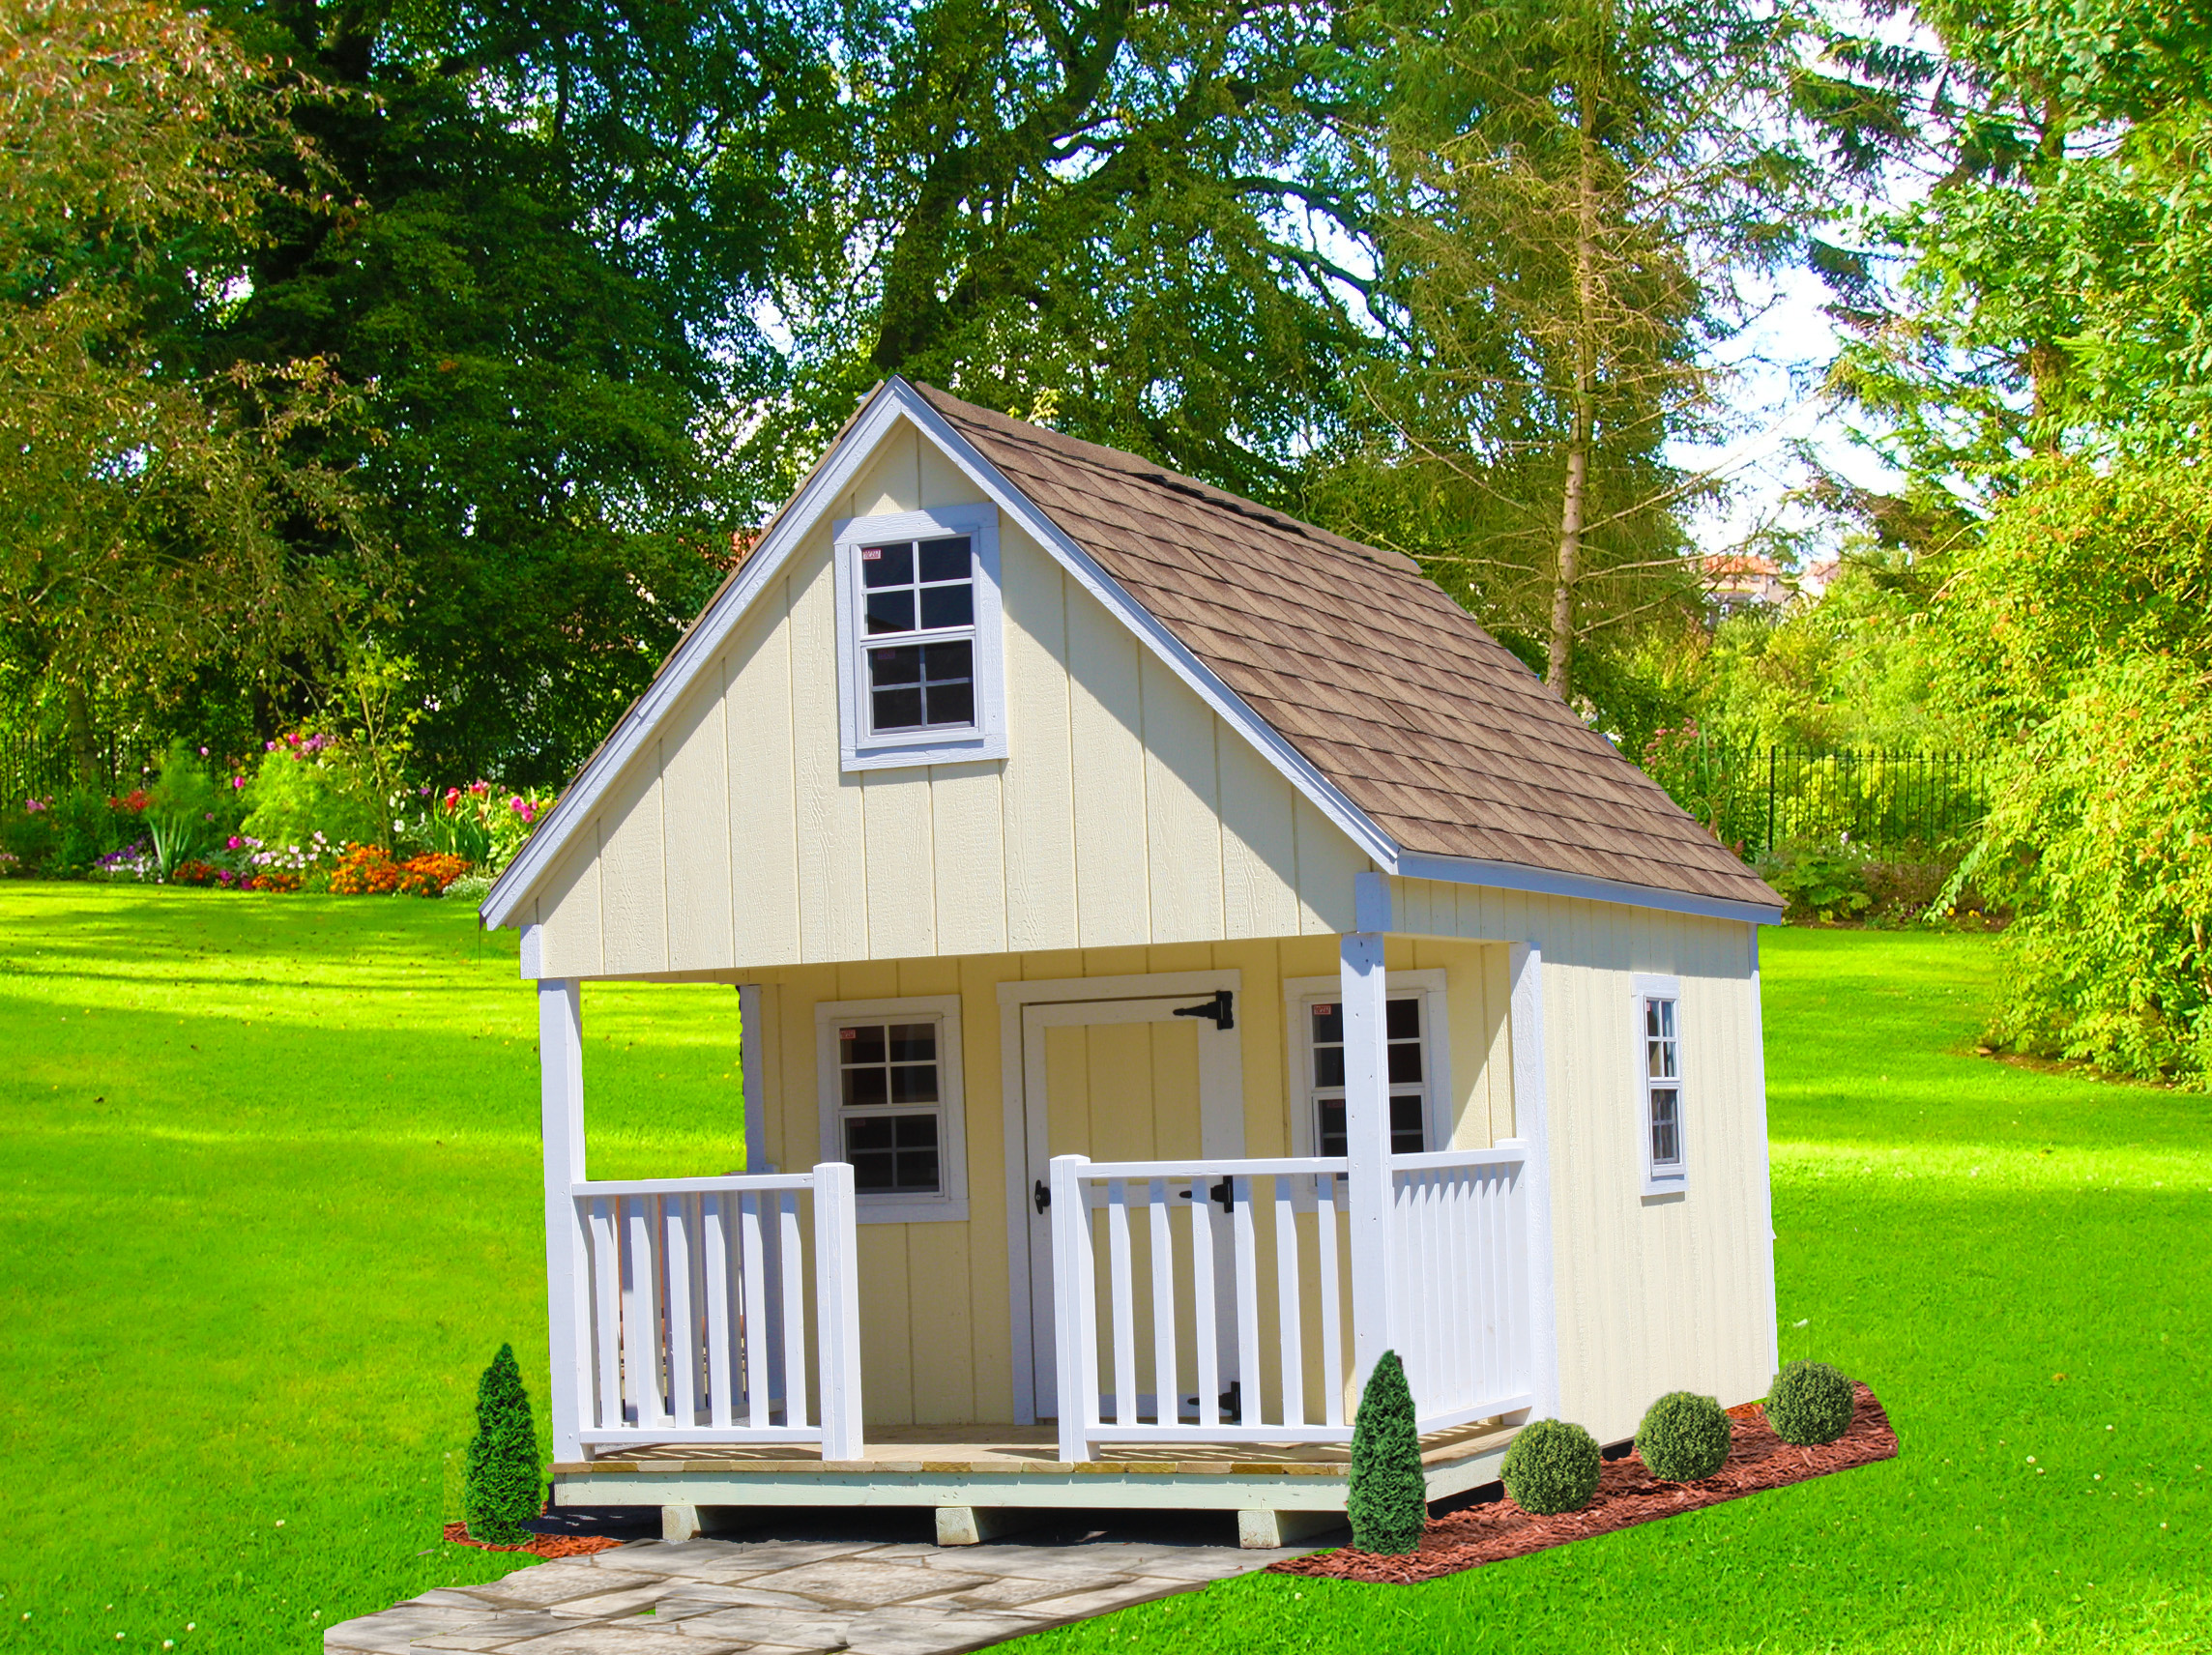 Yellow Cabin Style Playhouse